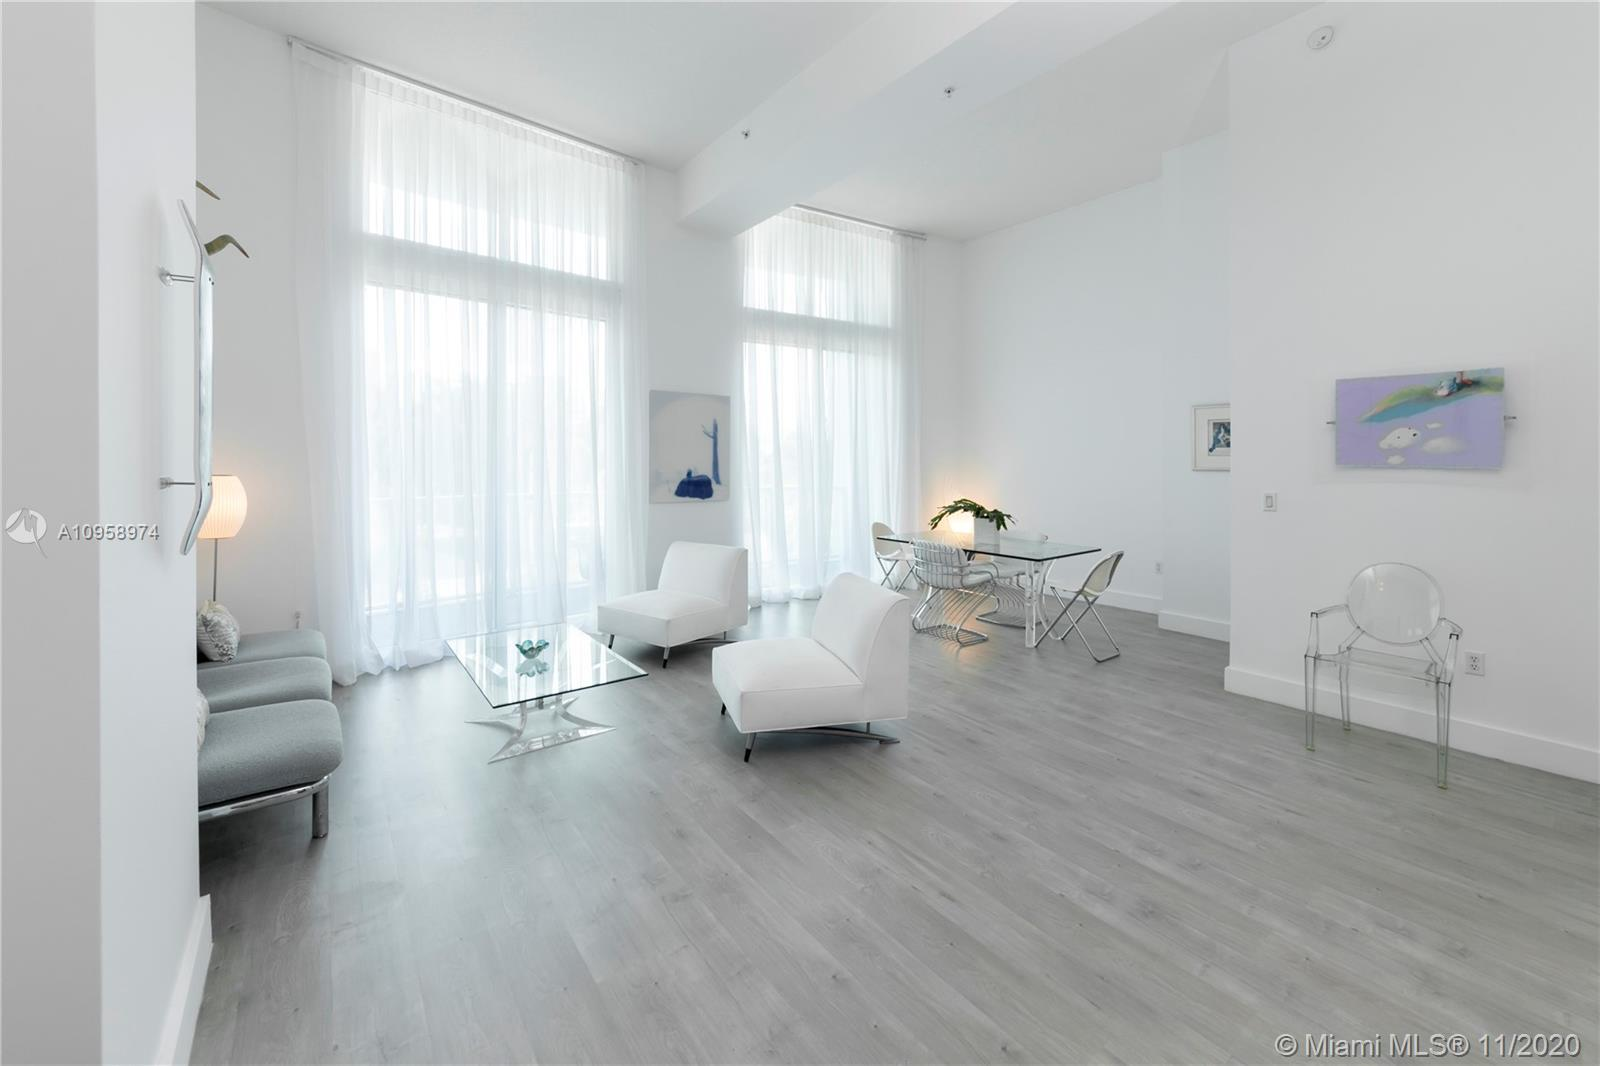 Elegant contemporary 1 Bedroom/1 Bath loft, features Italian kitchen cabinets with white corian tops